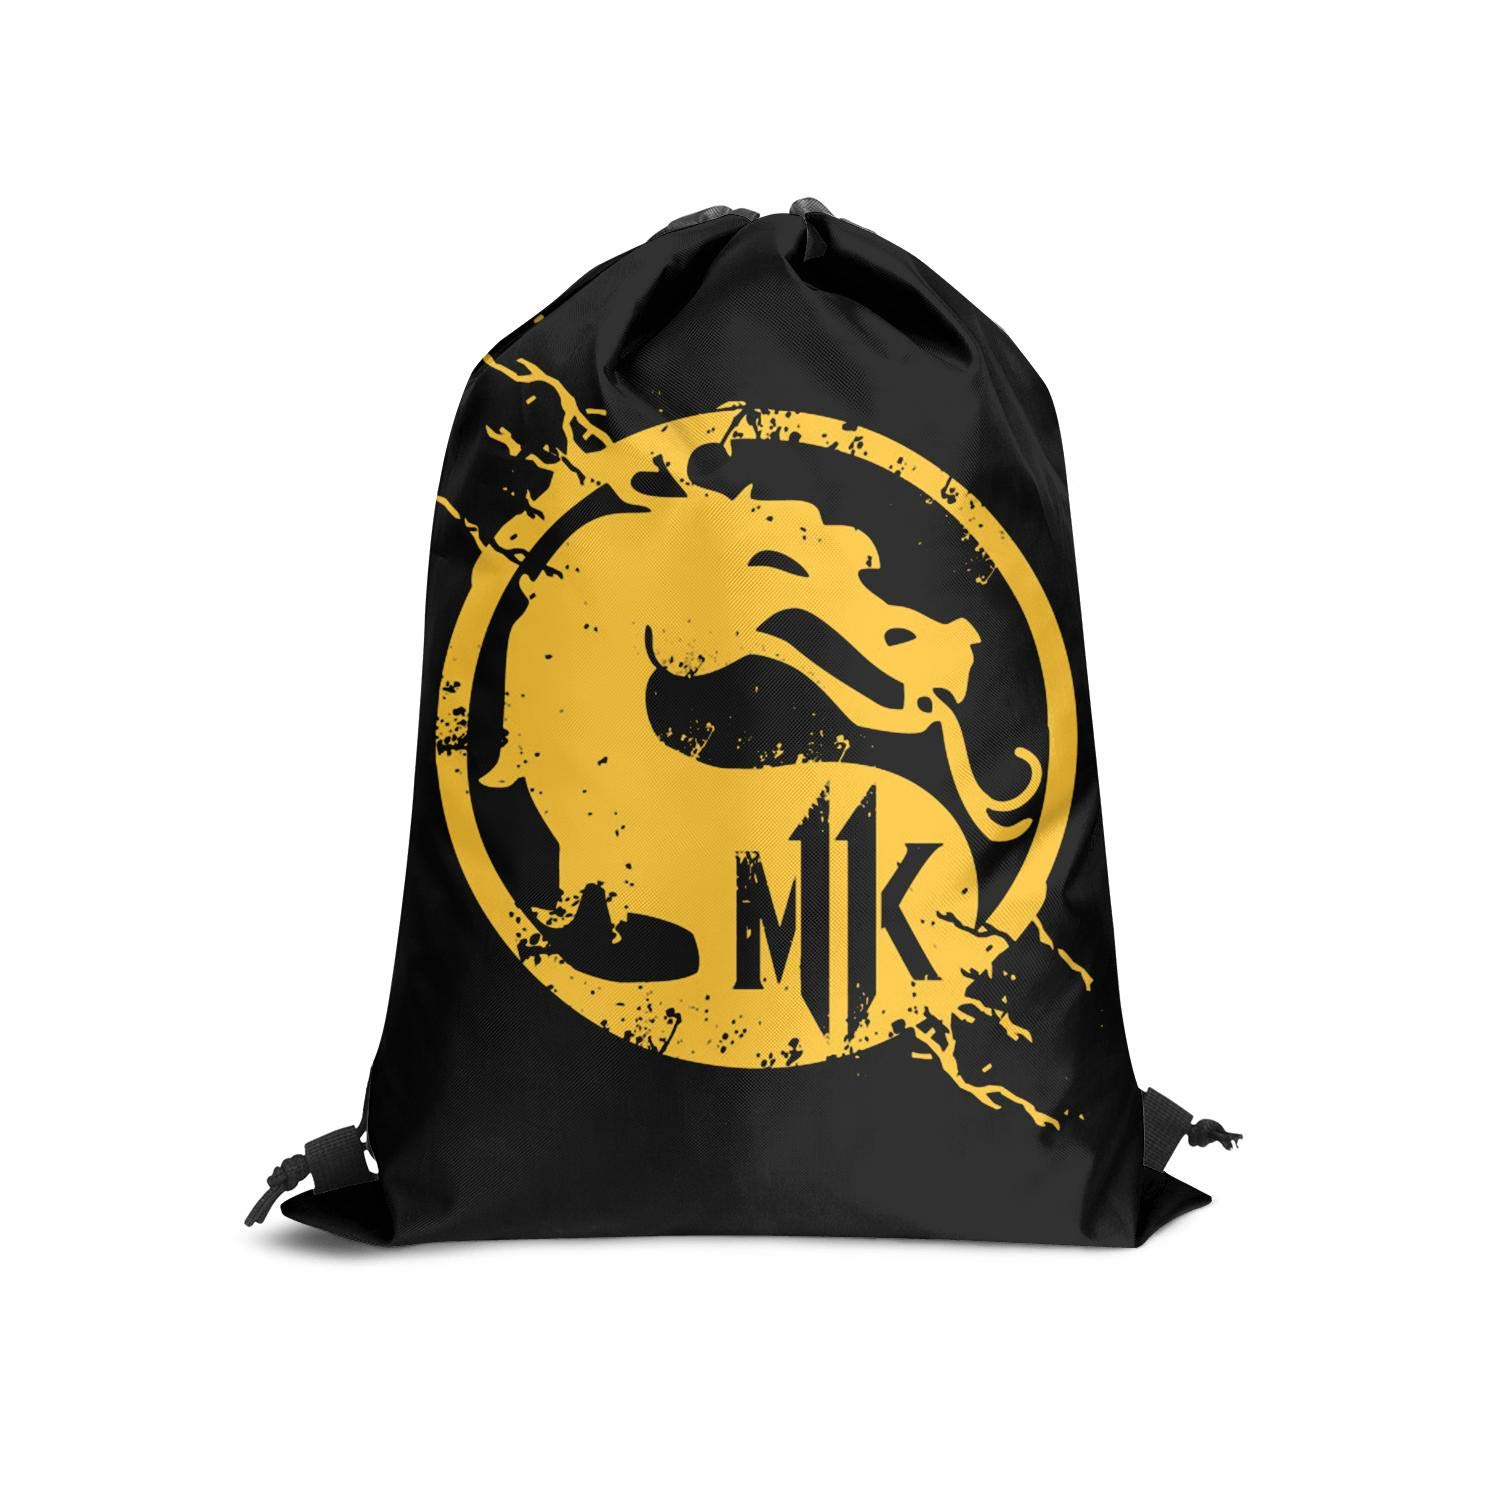 Mortal-kombat-11-logo Drawstring Backpack Adjustable Gym Sack Bag